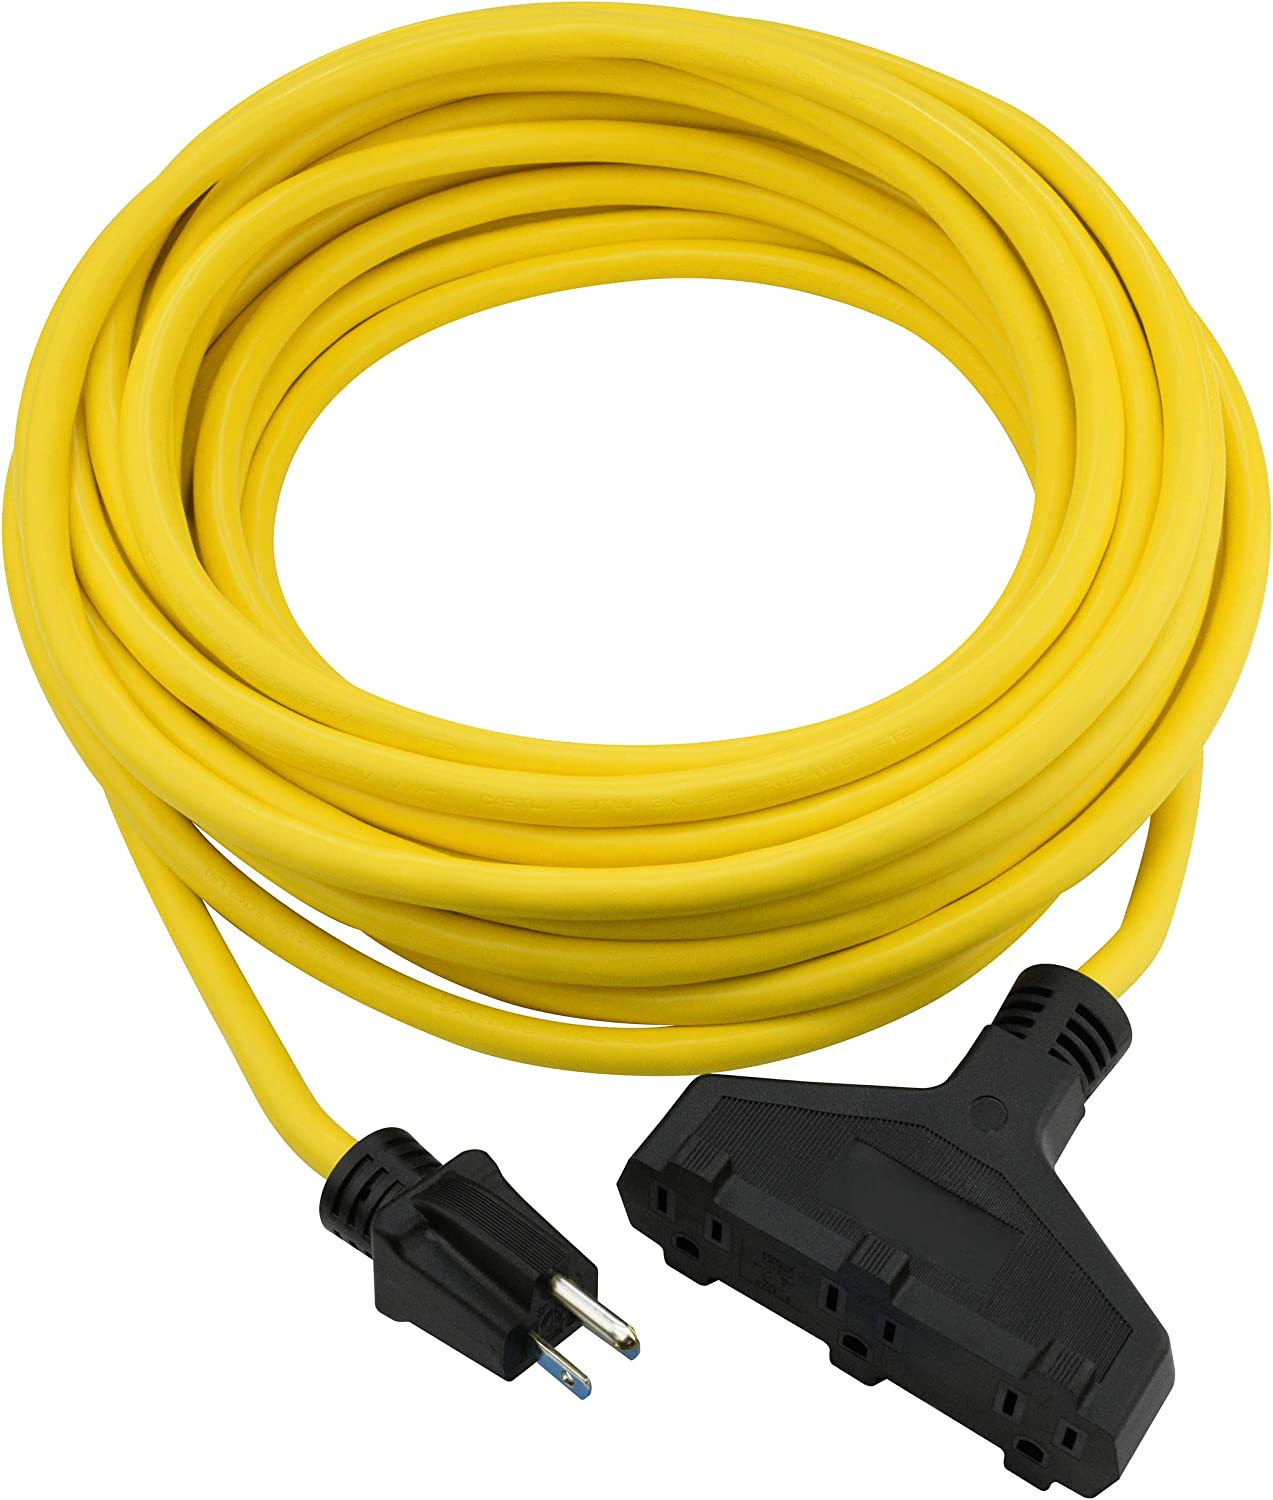 Clear Power 50 ft 3 Outlet Cord specialty shop Duty Max 85% OFF Outdoor Heavy 12 Extension